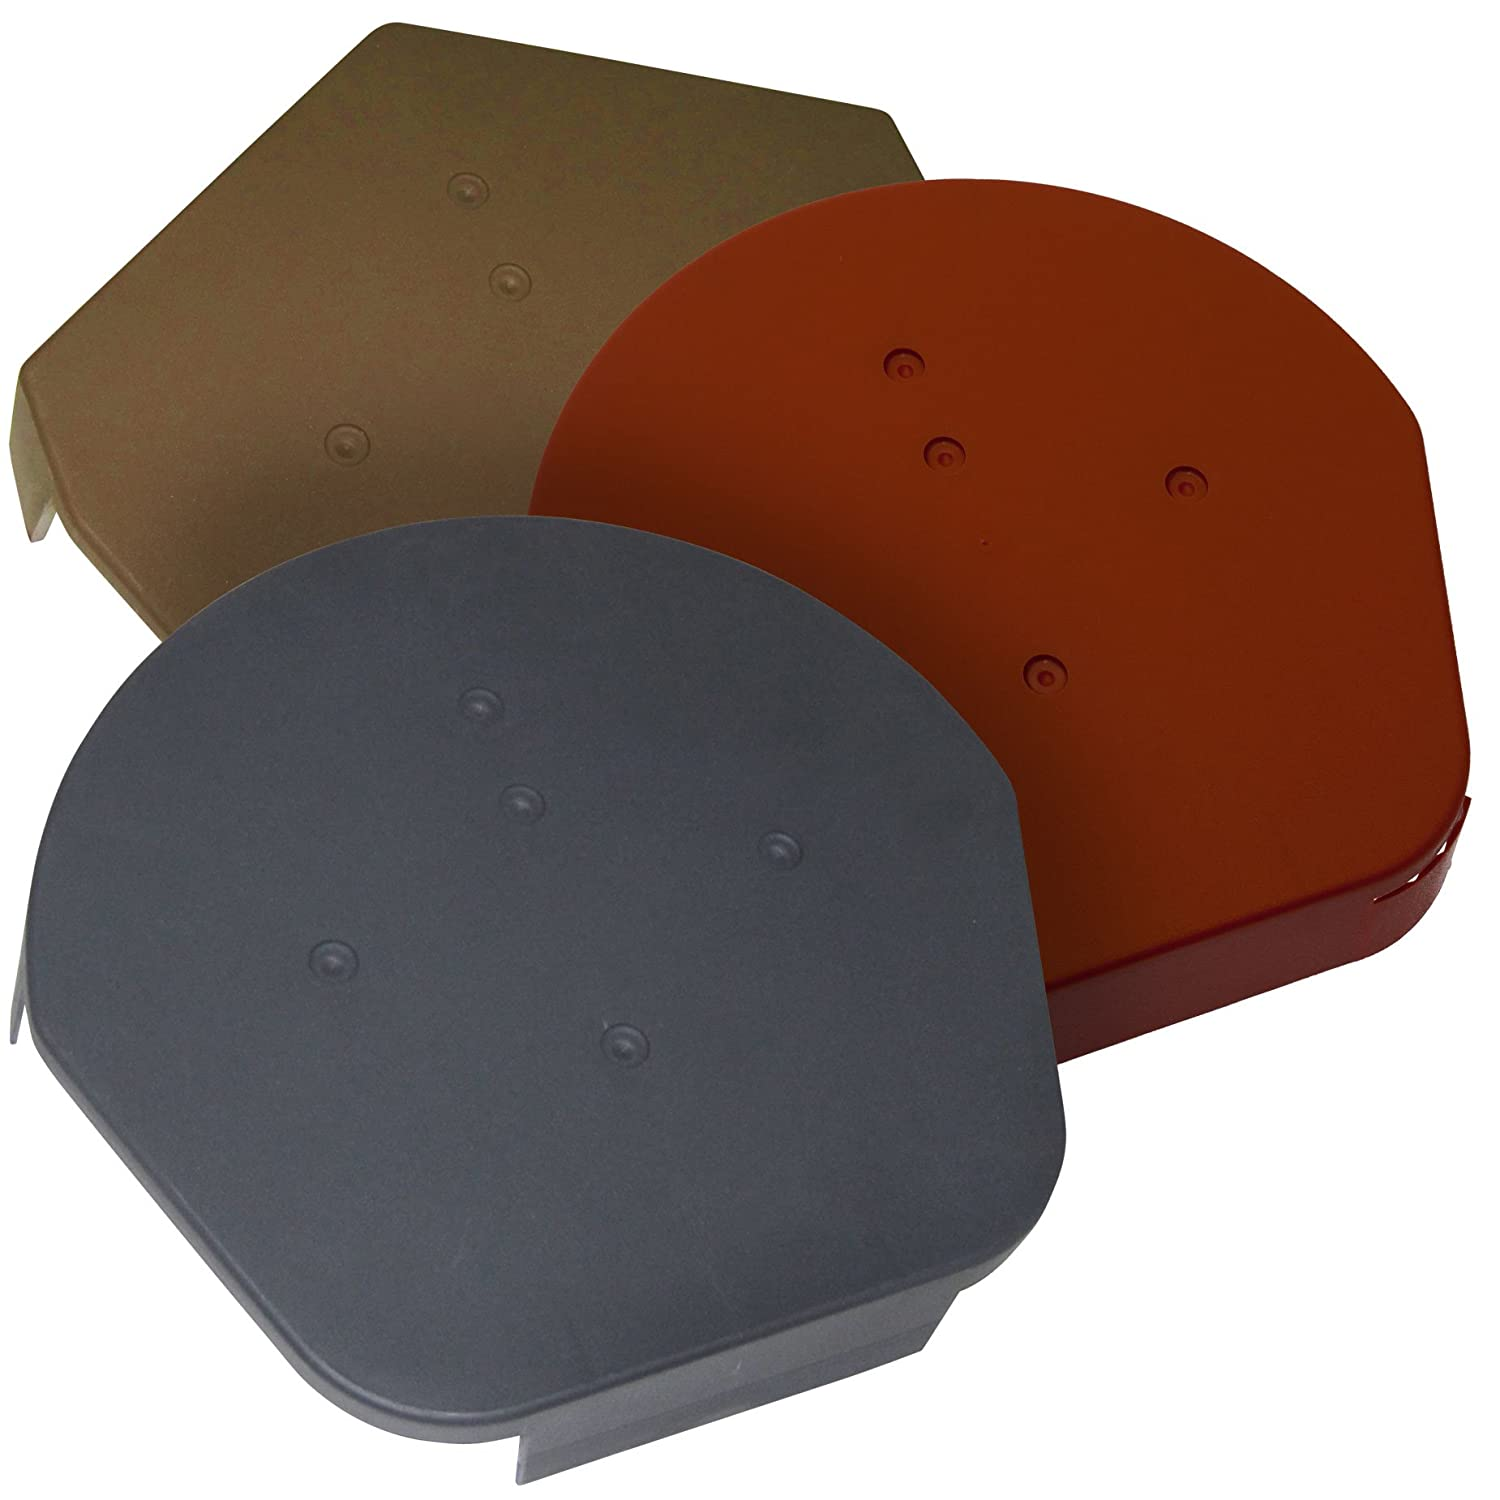 1 x Grey Universal Apex End Cap - Dry Verge Unit Gable Roof Mortar Free - Choice of colour and style Easy-Trim